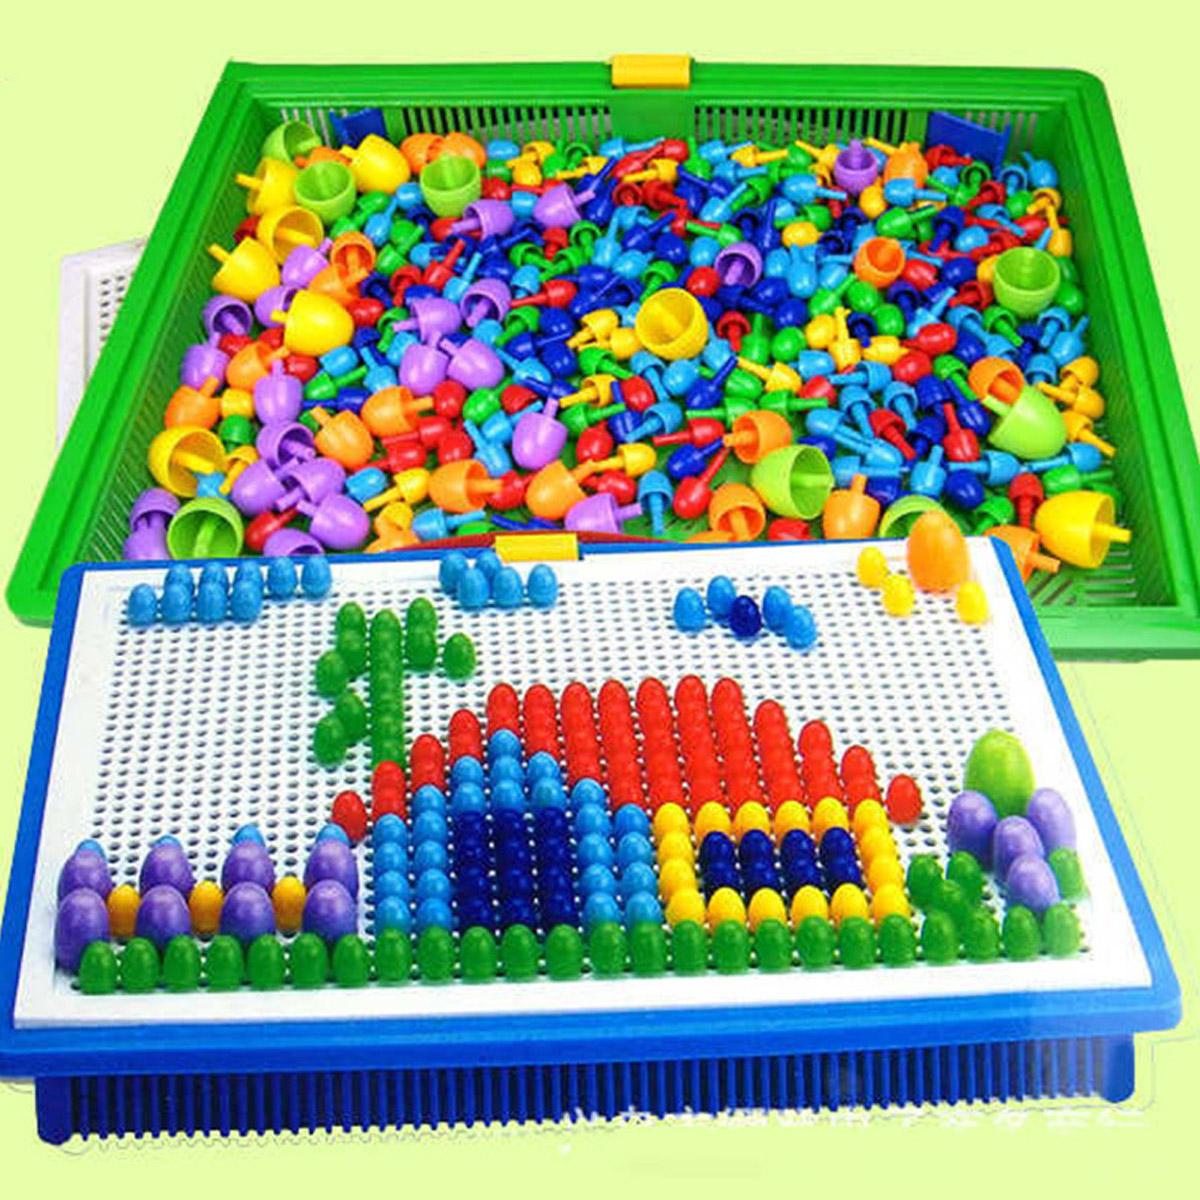 Creative Peg Board With 296 Pegs Model Building Kits Building Toy Intelligence For Kids S7JN